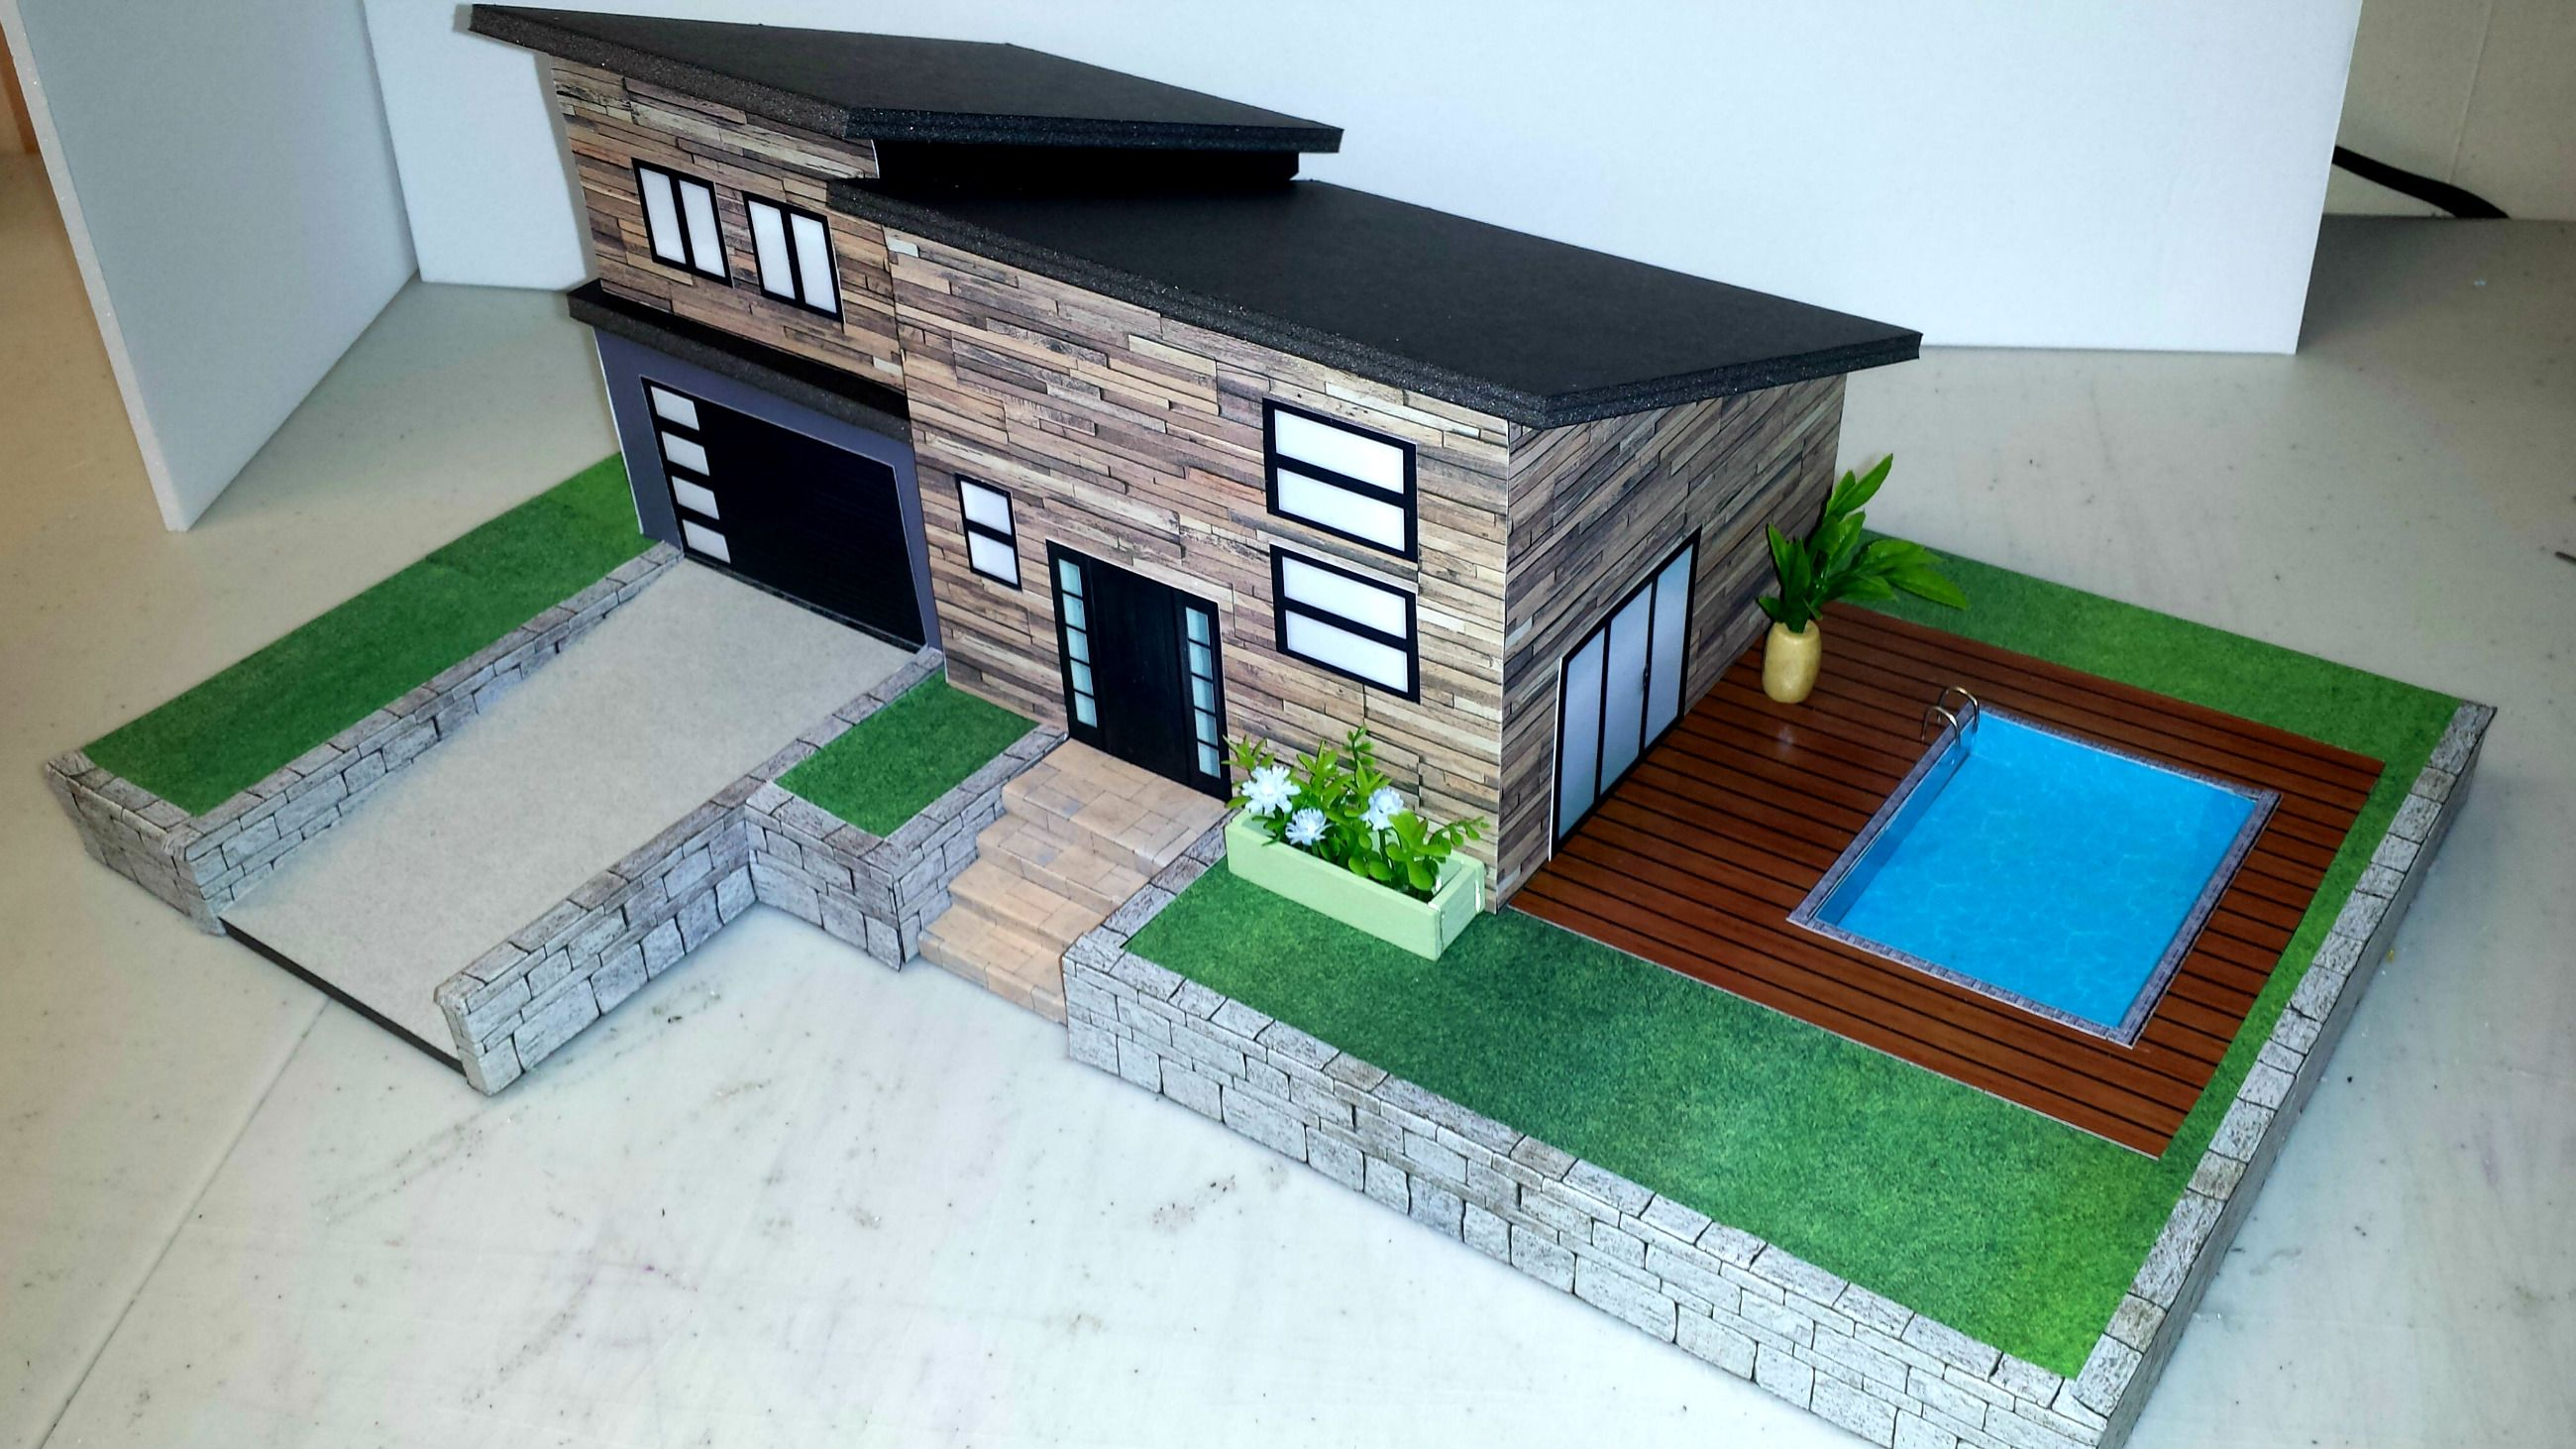 How To Make A Miniature Dollhouse With Swimming Pool Miniature Houses Doll House Swimming Pools